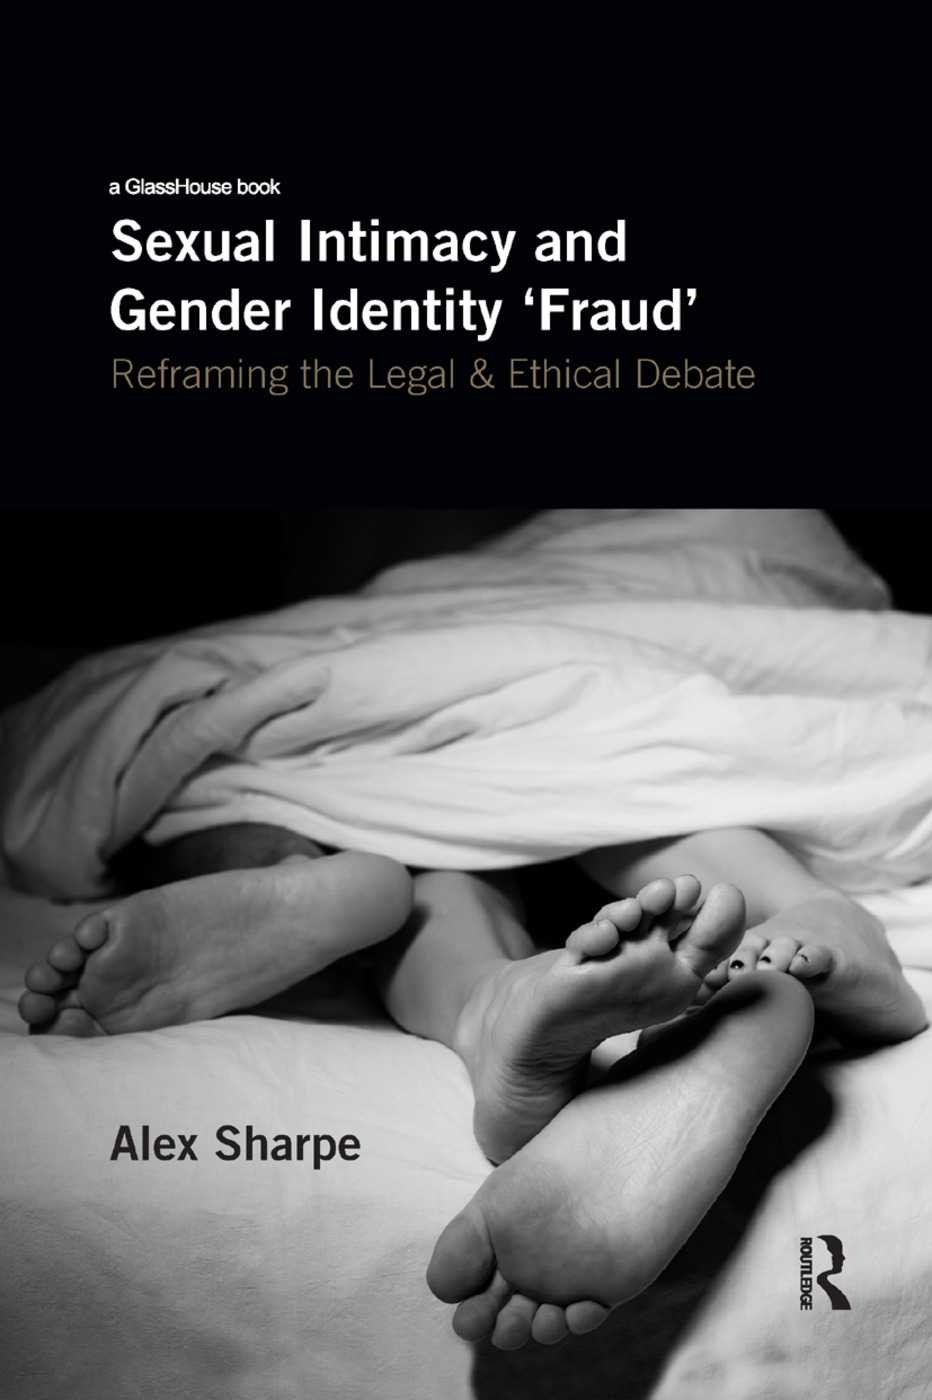 Sexual Intimacy and Gender Identity 'Fraud': Reframing the Legal and Ethical Debate book cover